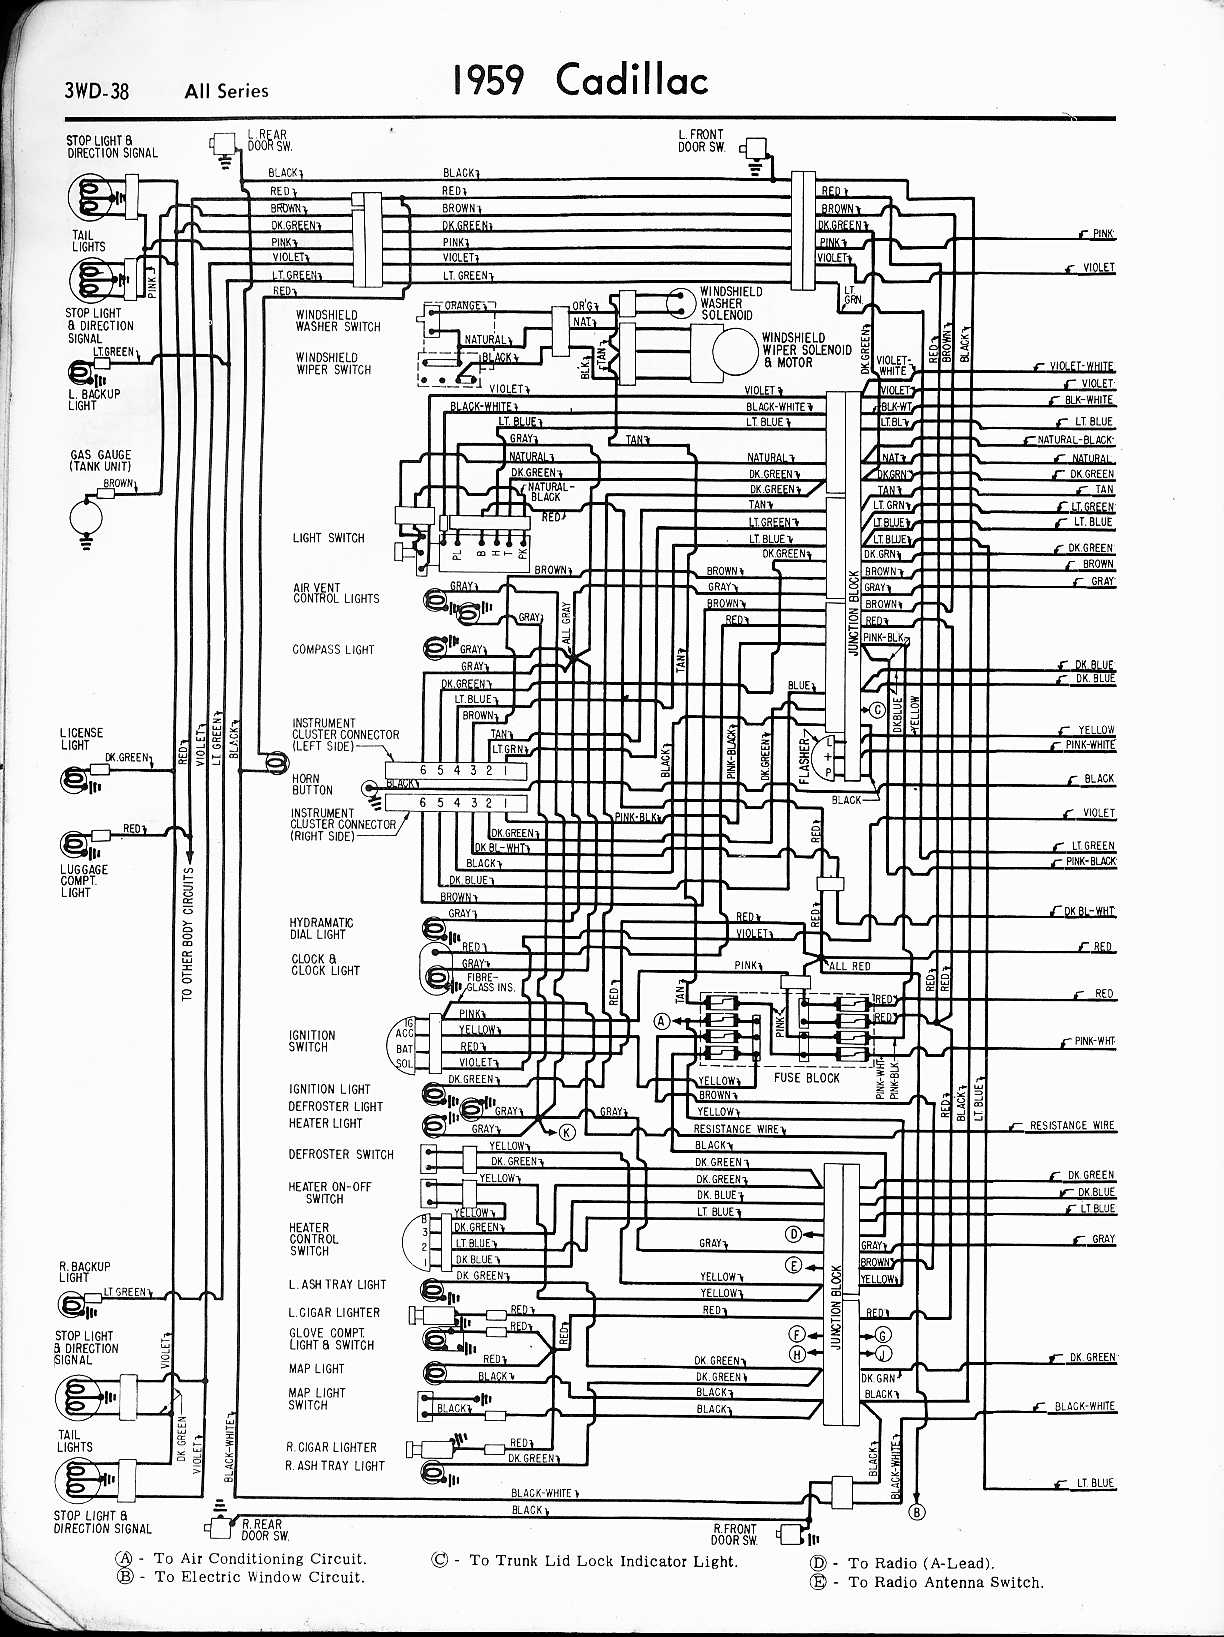 Groovy Fleetwood Brougham Wiring Diagram On 86 Caprice Wiring Diagram Wiring Cloud Rineaidewilluminateatxorg